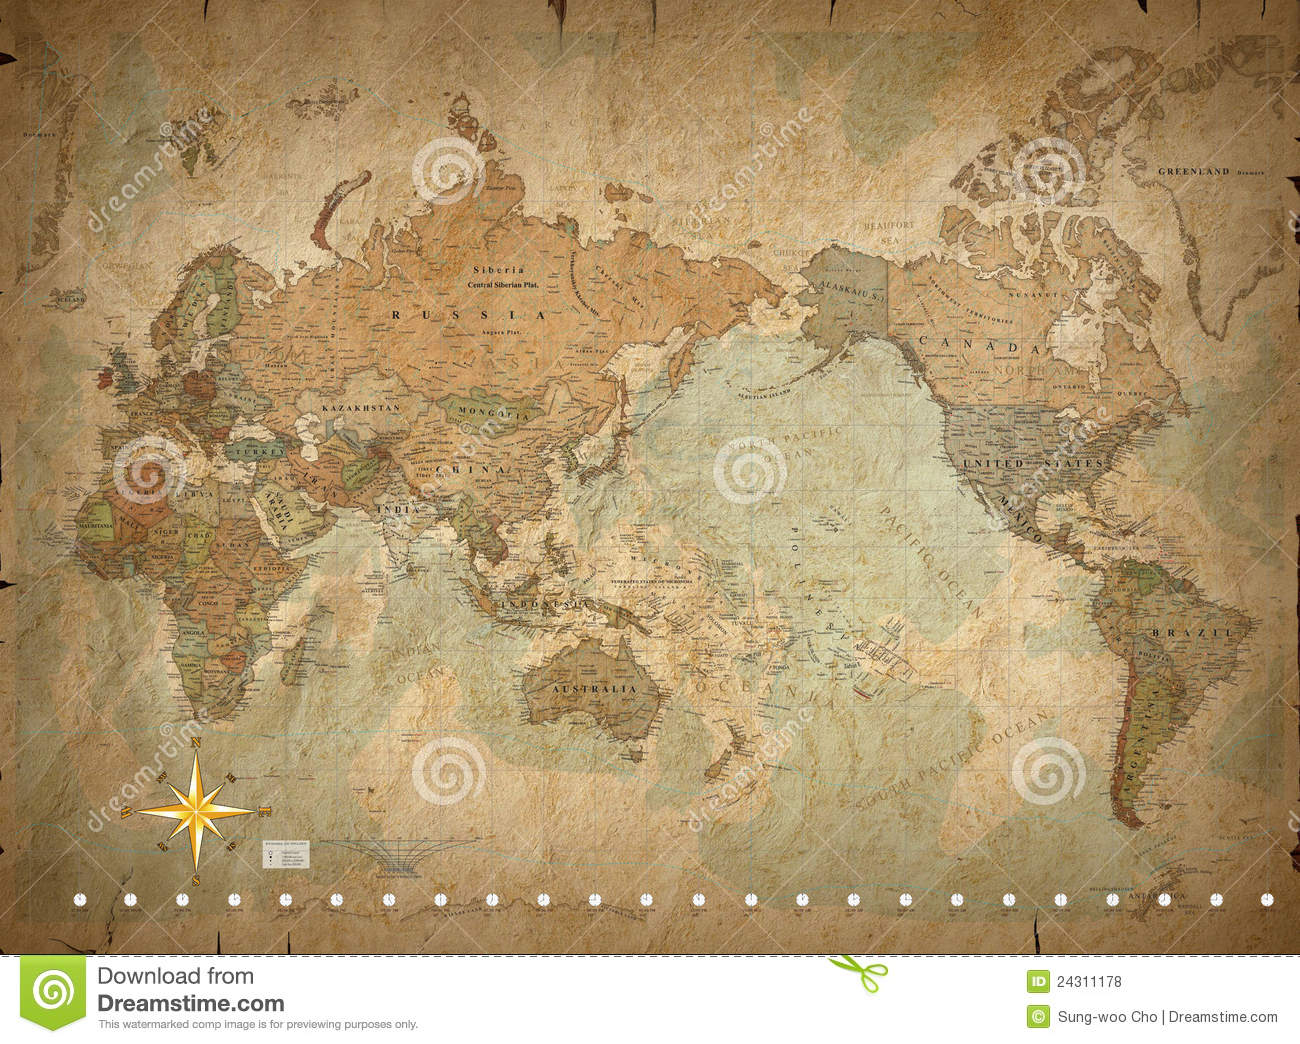 Antique World Map Royalty Free Stock Photos - Image: 24311178 Antique Continent Maps